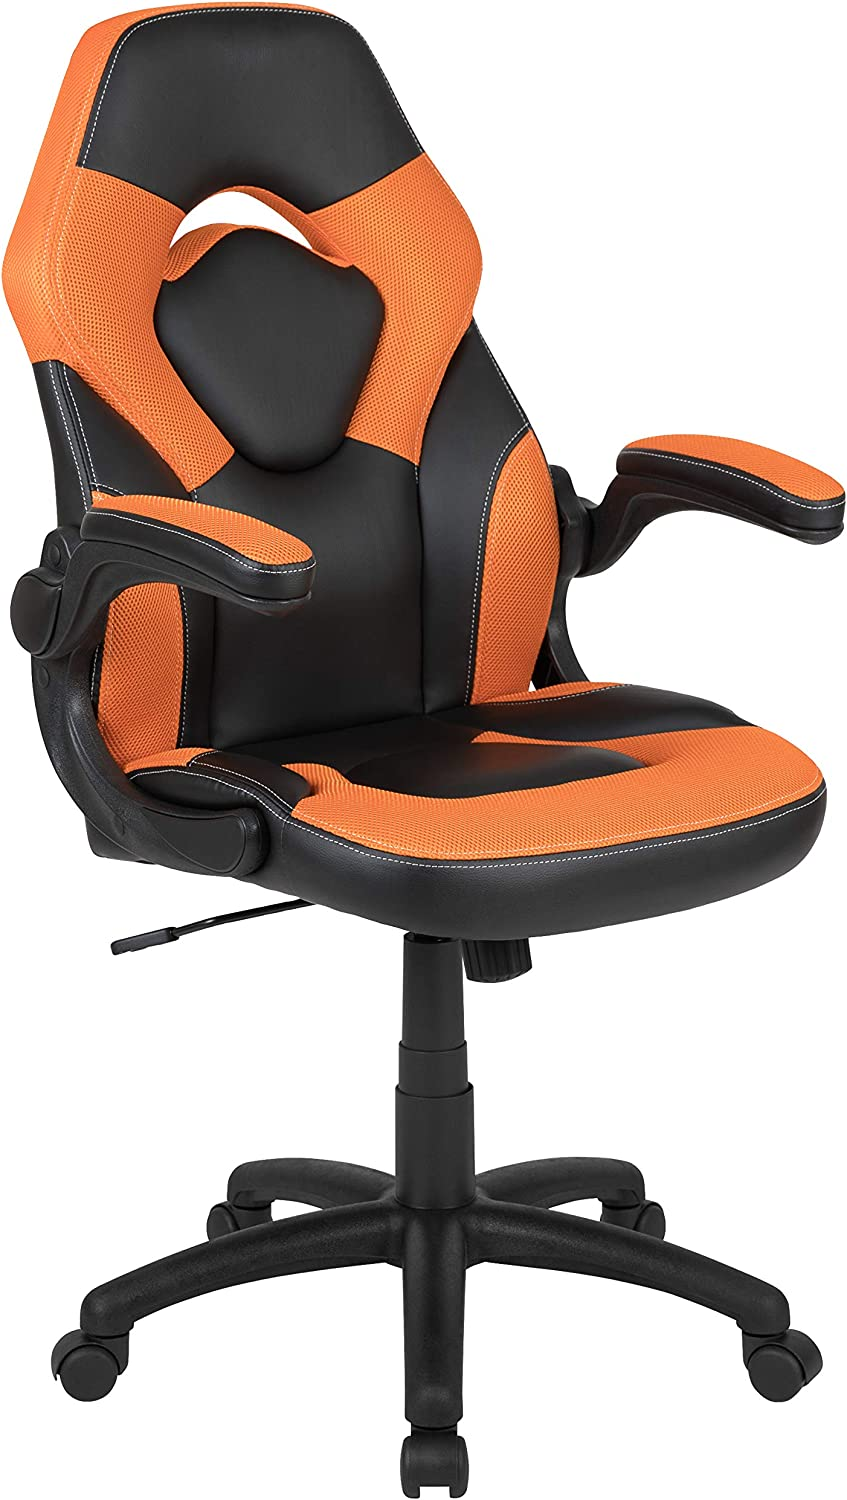 Flash Furniture X10 Gaming Chair Racing Office Ergonomic Computer PC Adjustable Swivel Chair with Flip-up Arms, Orange/Black LeatherSoft